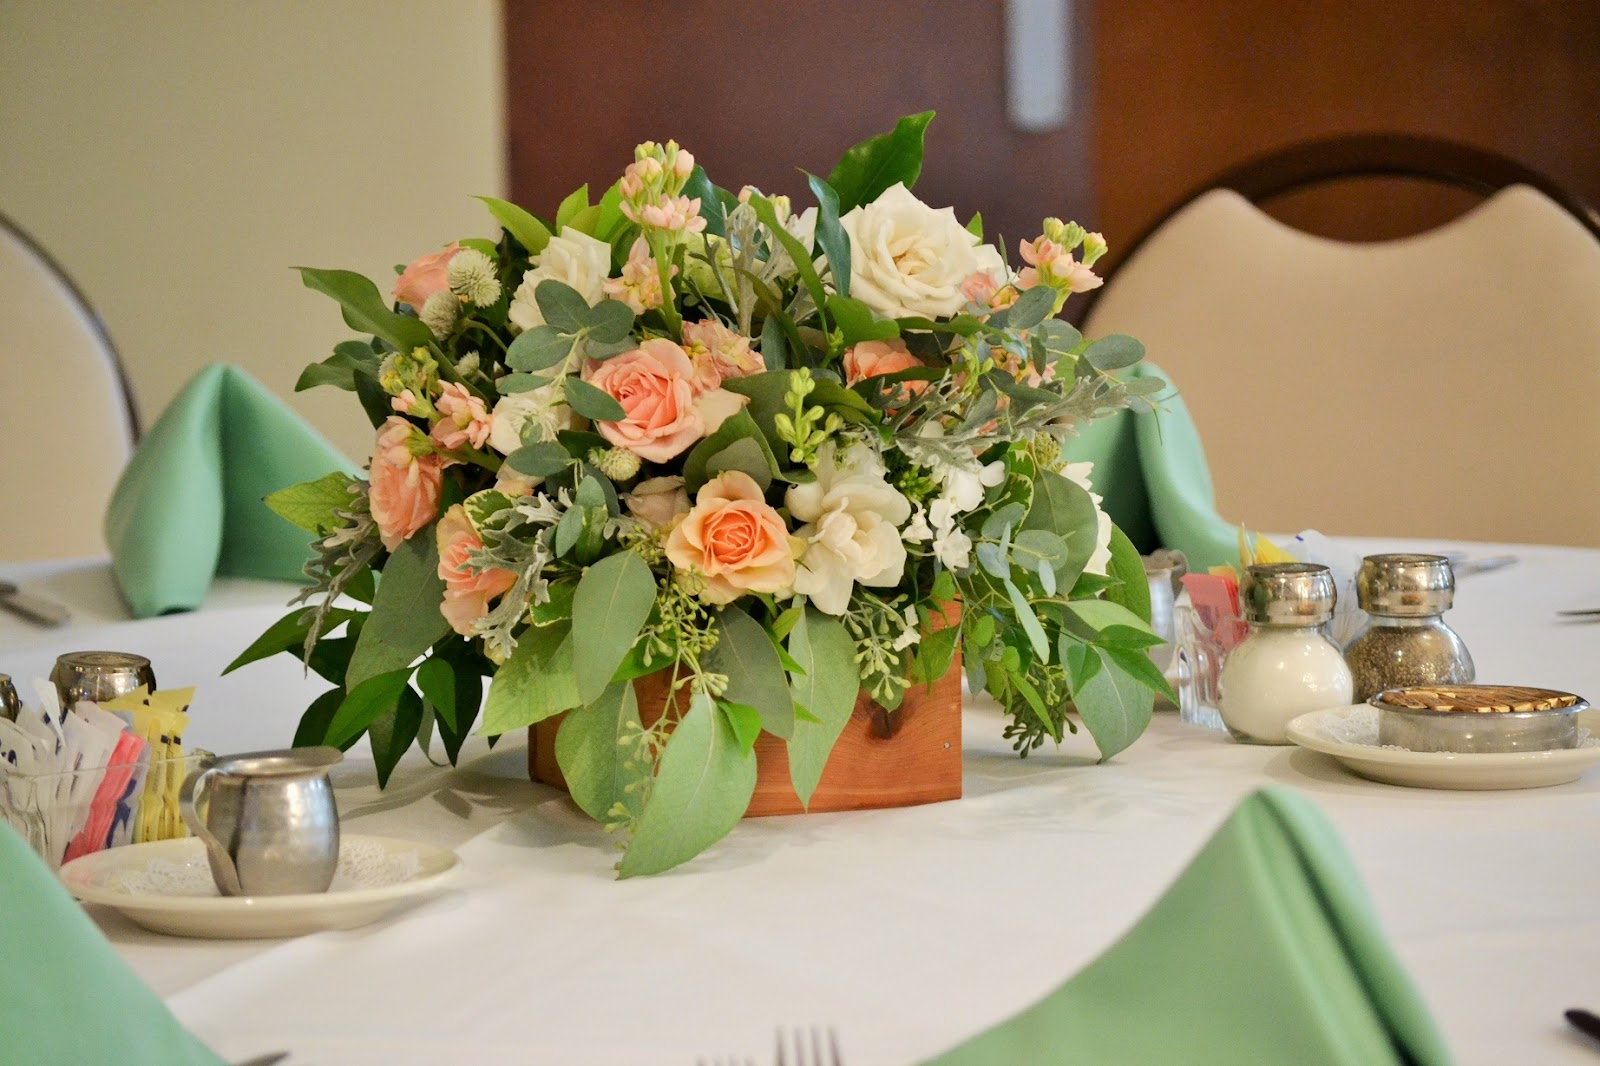 Wedding Flowers from Springwell: Peach Juliet Roses for a GardenStyle